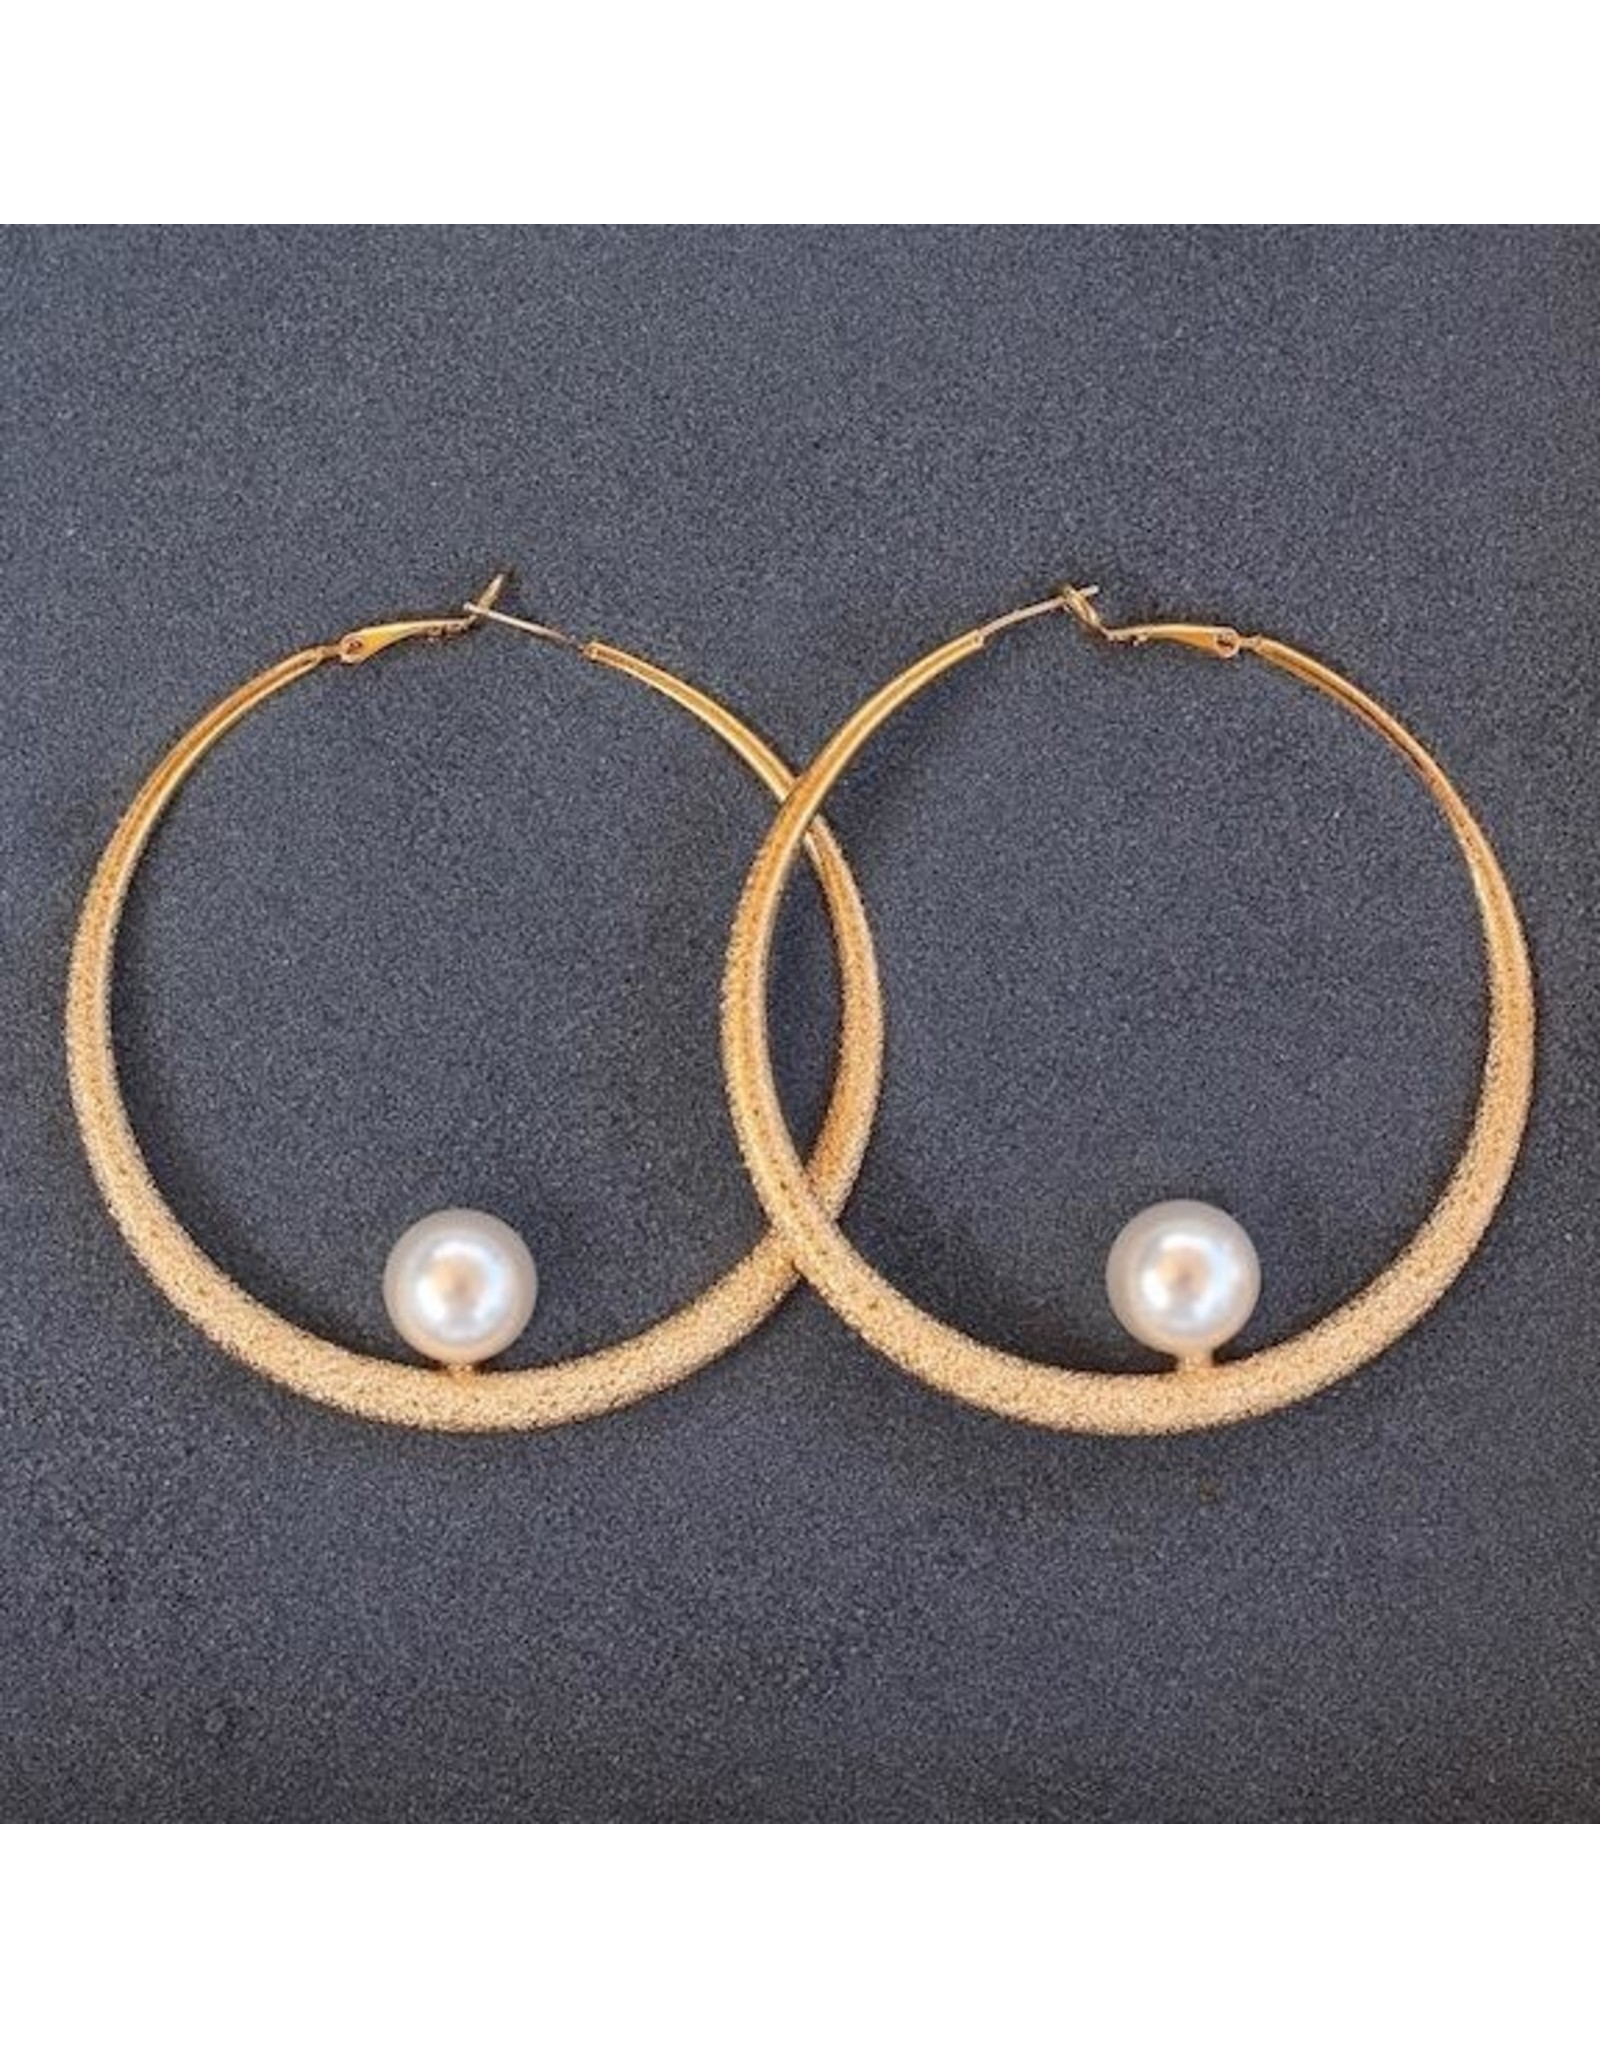 Philippe Ferrandis VCExclusives: Gold Loop Pearl Pierced